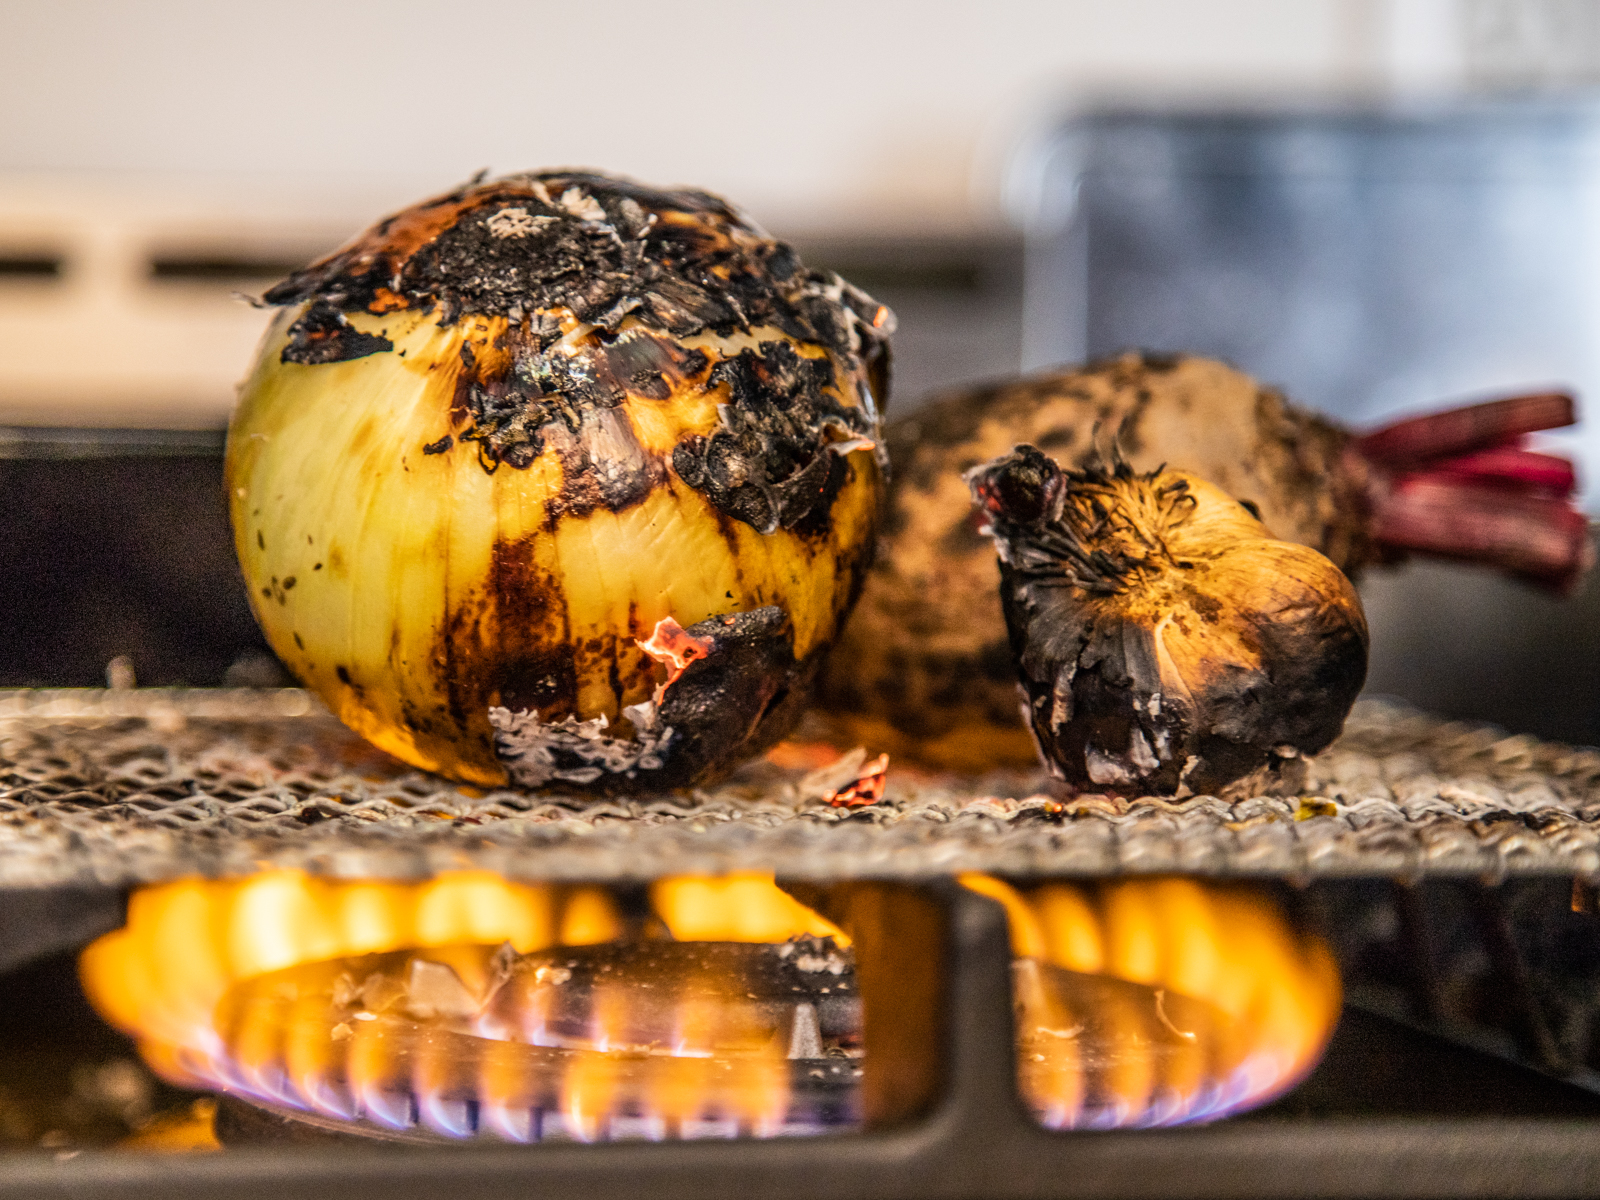 Charred Stovetop Vegetables